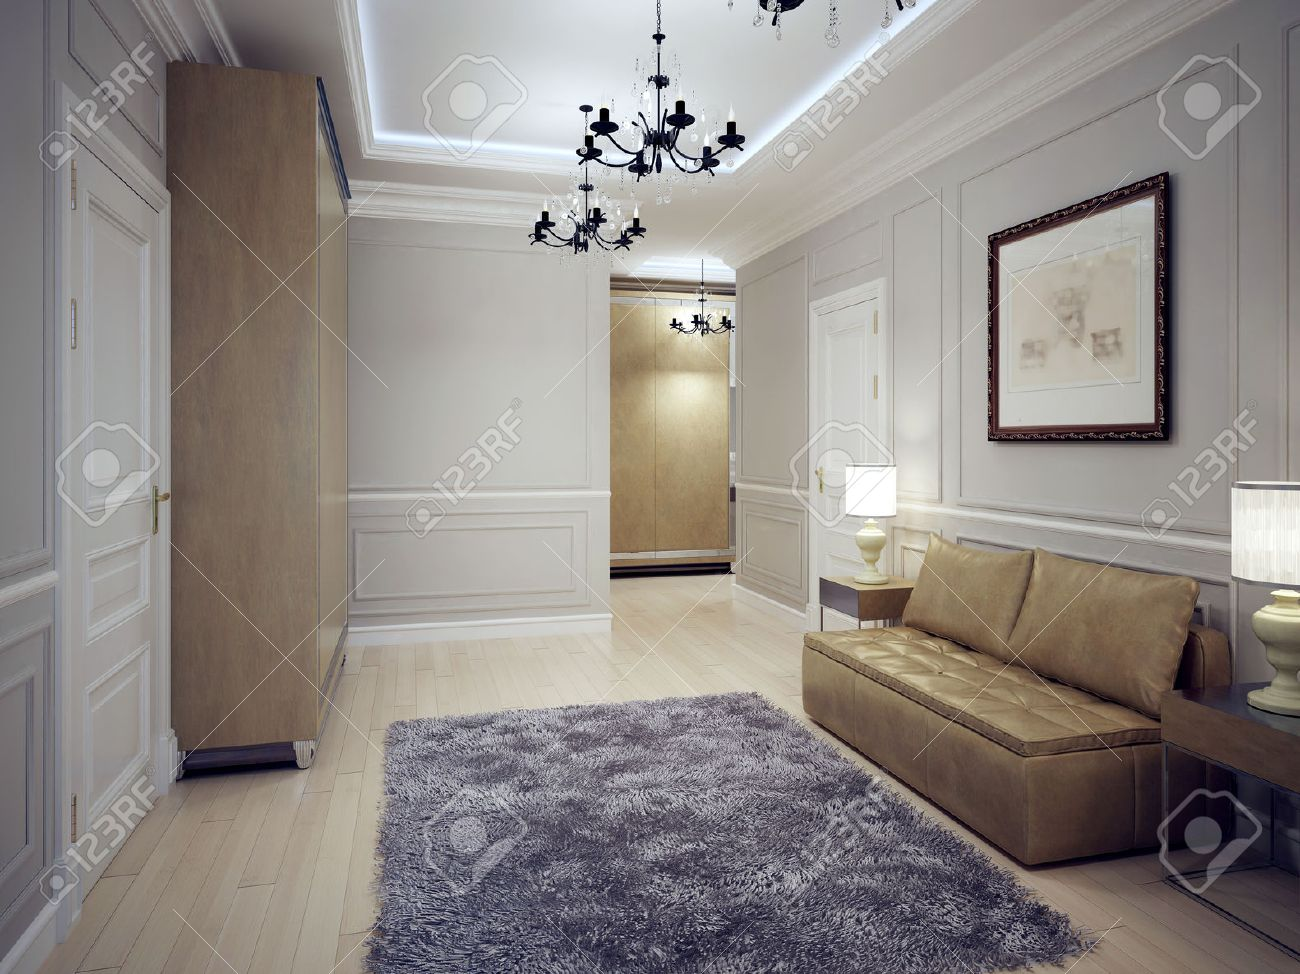 Spacious hallway art deco style modern hall with molding wall